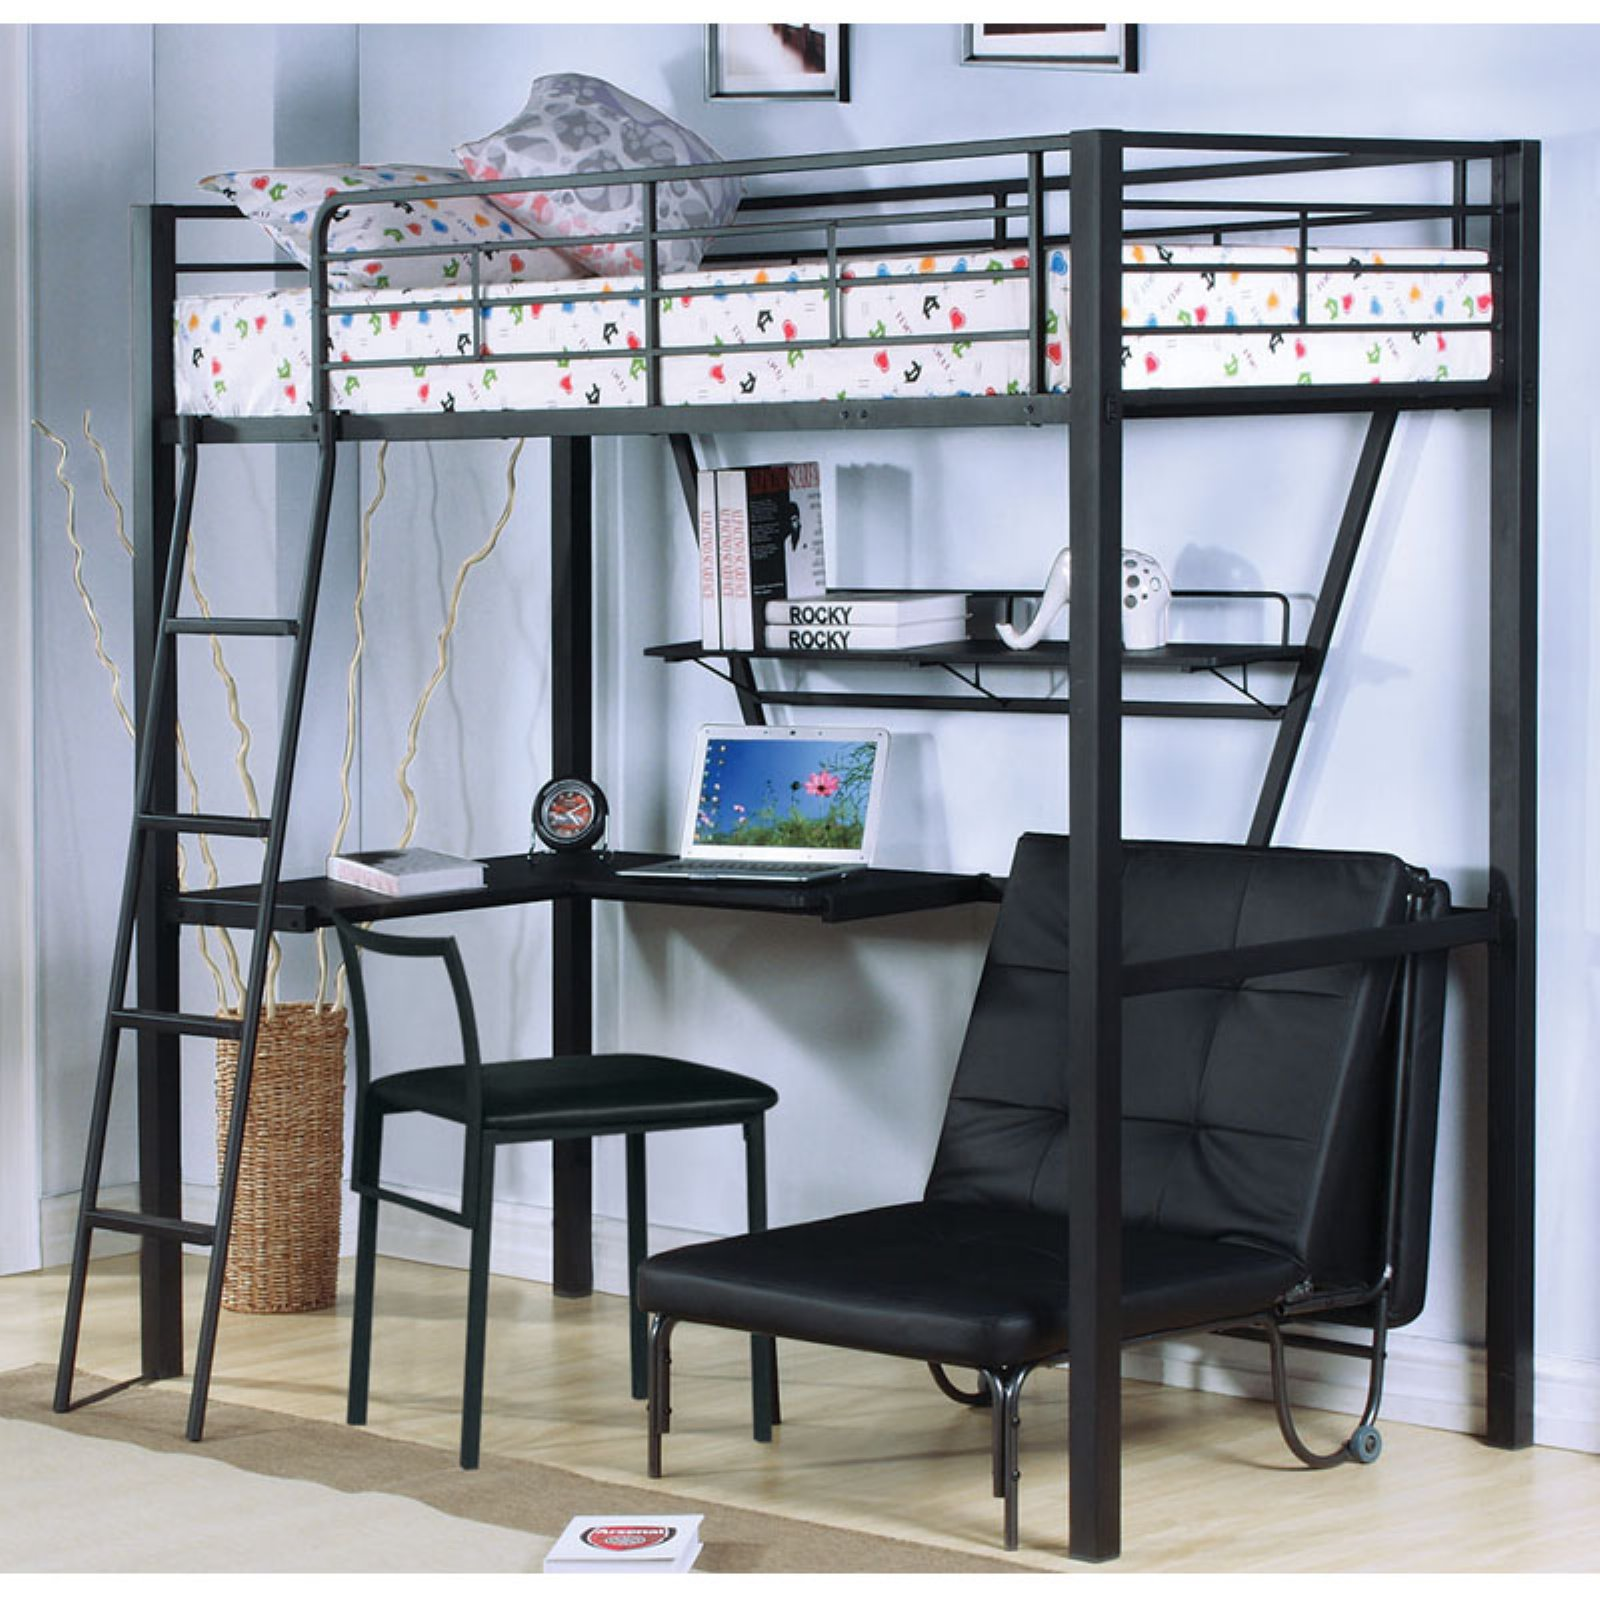 Acme Senon Loft Bed with Desk, Silver and Black - Walmart.com